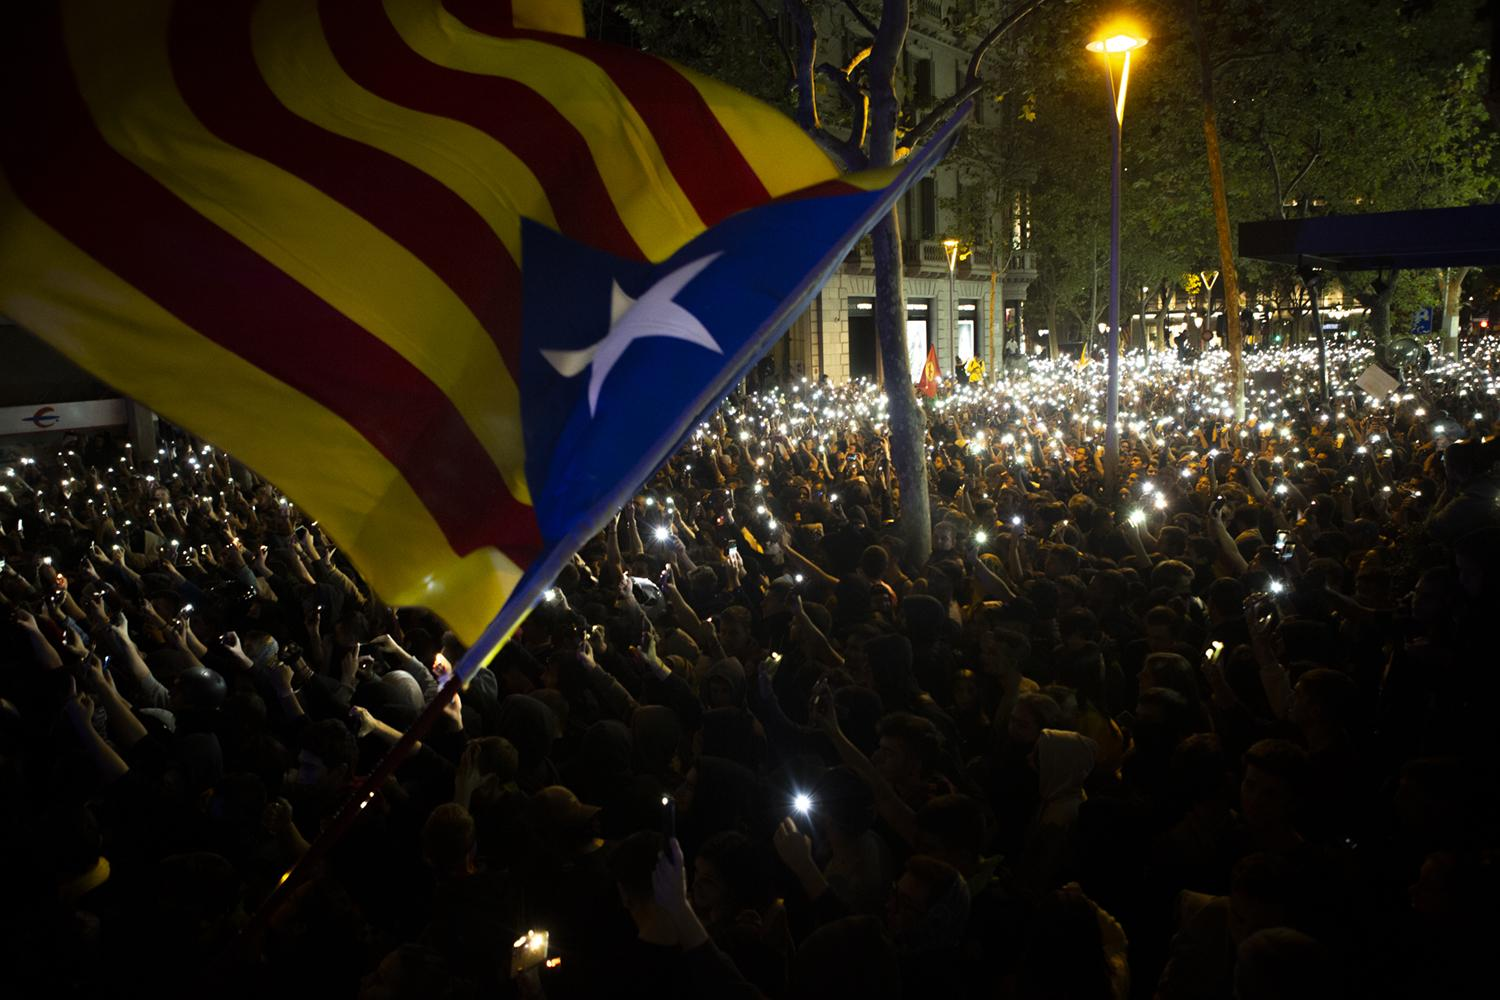 A pro-independence Estelada flag is waved above demonstrators holding up their cellphones during a protest in Barcelona, Spain, Tuesday, Oct. 15, 2019. Spain's Supreme Court on Monday convicted 12 former Catalan politicians and activists for their roles in a secession bid in 2017, a ruling that immediately inflamed independence supporters in the wealthy northeastern region. (AP Photo/Joan Mateu)